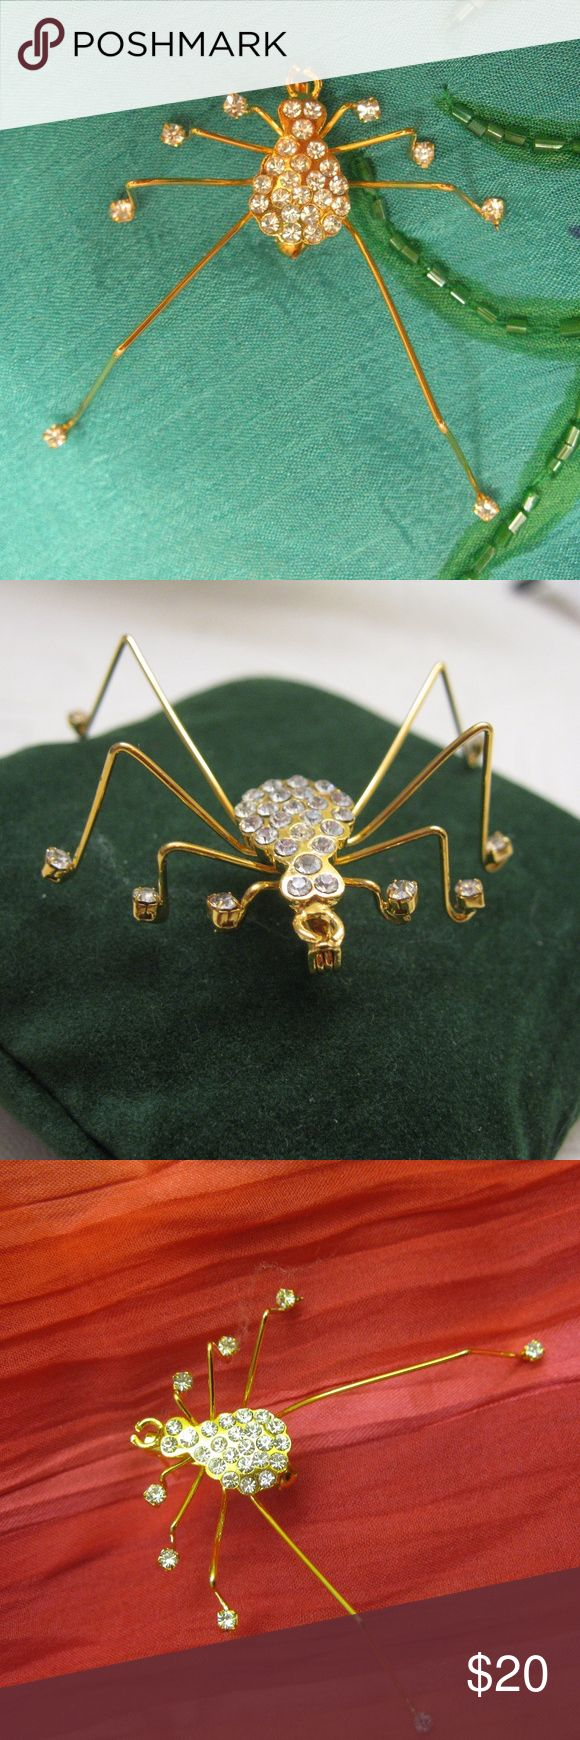 """Rhinestone Gold Dimensional Daddy Long Legs Pin Let this cheery little long legged spider be your new friend.  Shaped like a Daddy Long Legs, this arachnid is constructed of gold tone metal and Aurora Borealis rhinestones.  Rhinestones are set into the body, head, and foot portion of all eight legs.  Secure roll over catch. 2 1/4"""" x 2 1/4"""" x 1"""" high.  4.4g  Fabulous on a jacket, purse, hat, costume or to add to your collection.  (817MP-186) Vintage Jewelry Brooches"""